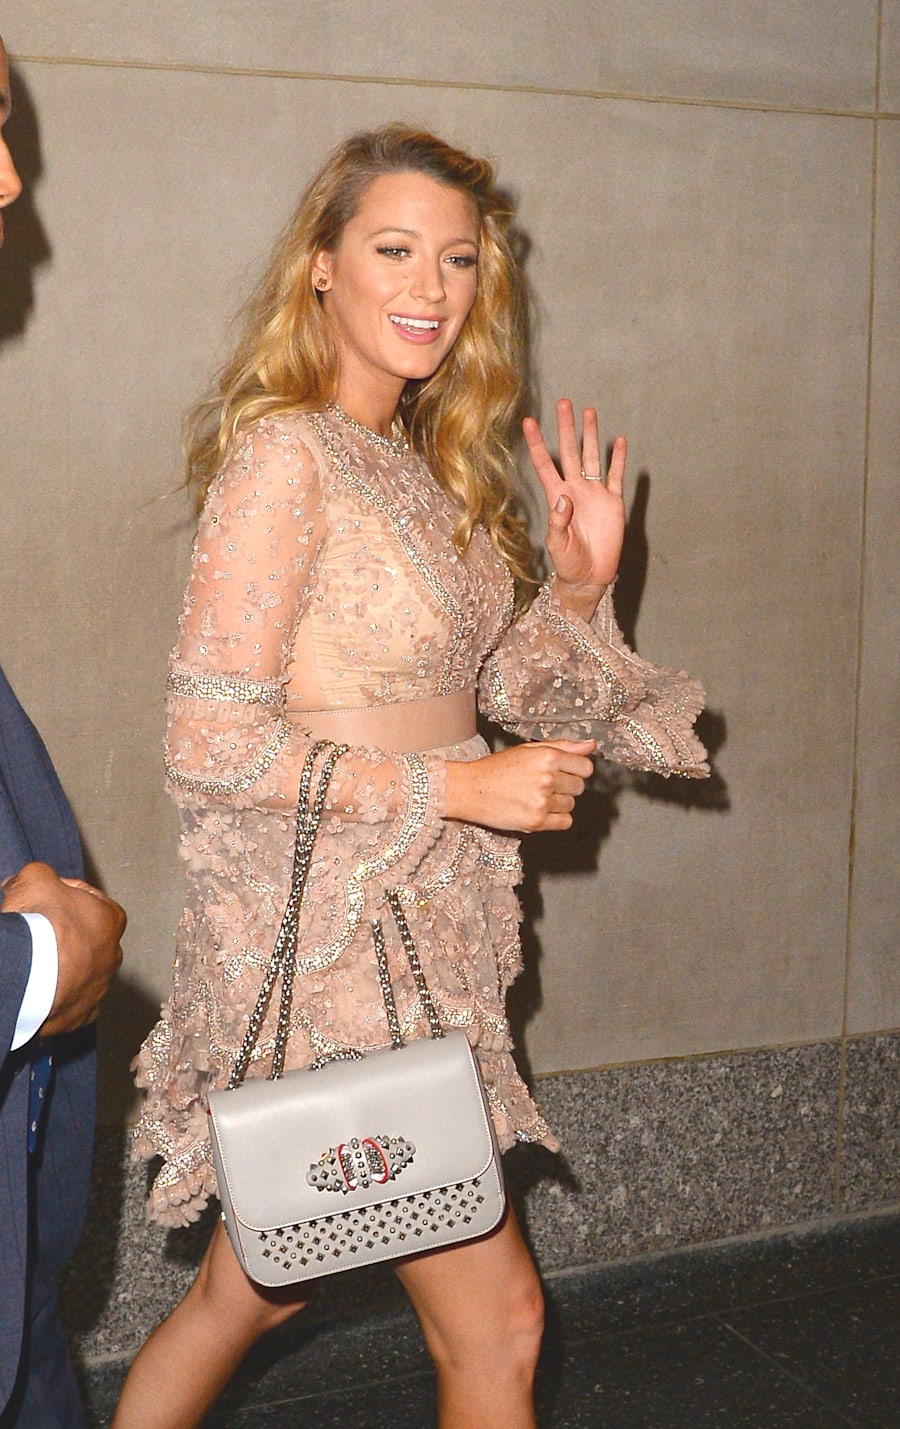 To top it off, that evening she opted for an embellished metallic mini dress and statement dove grey...